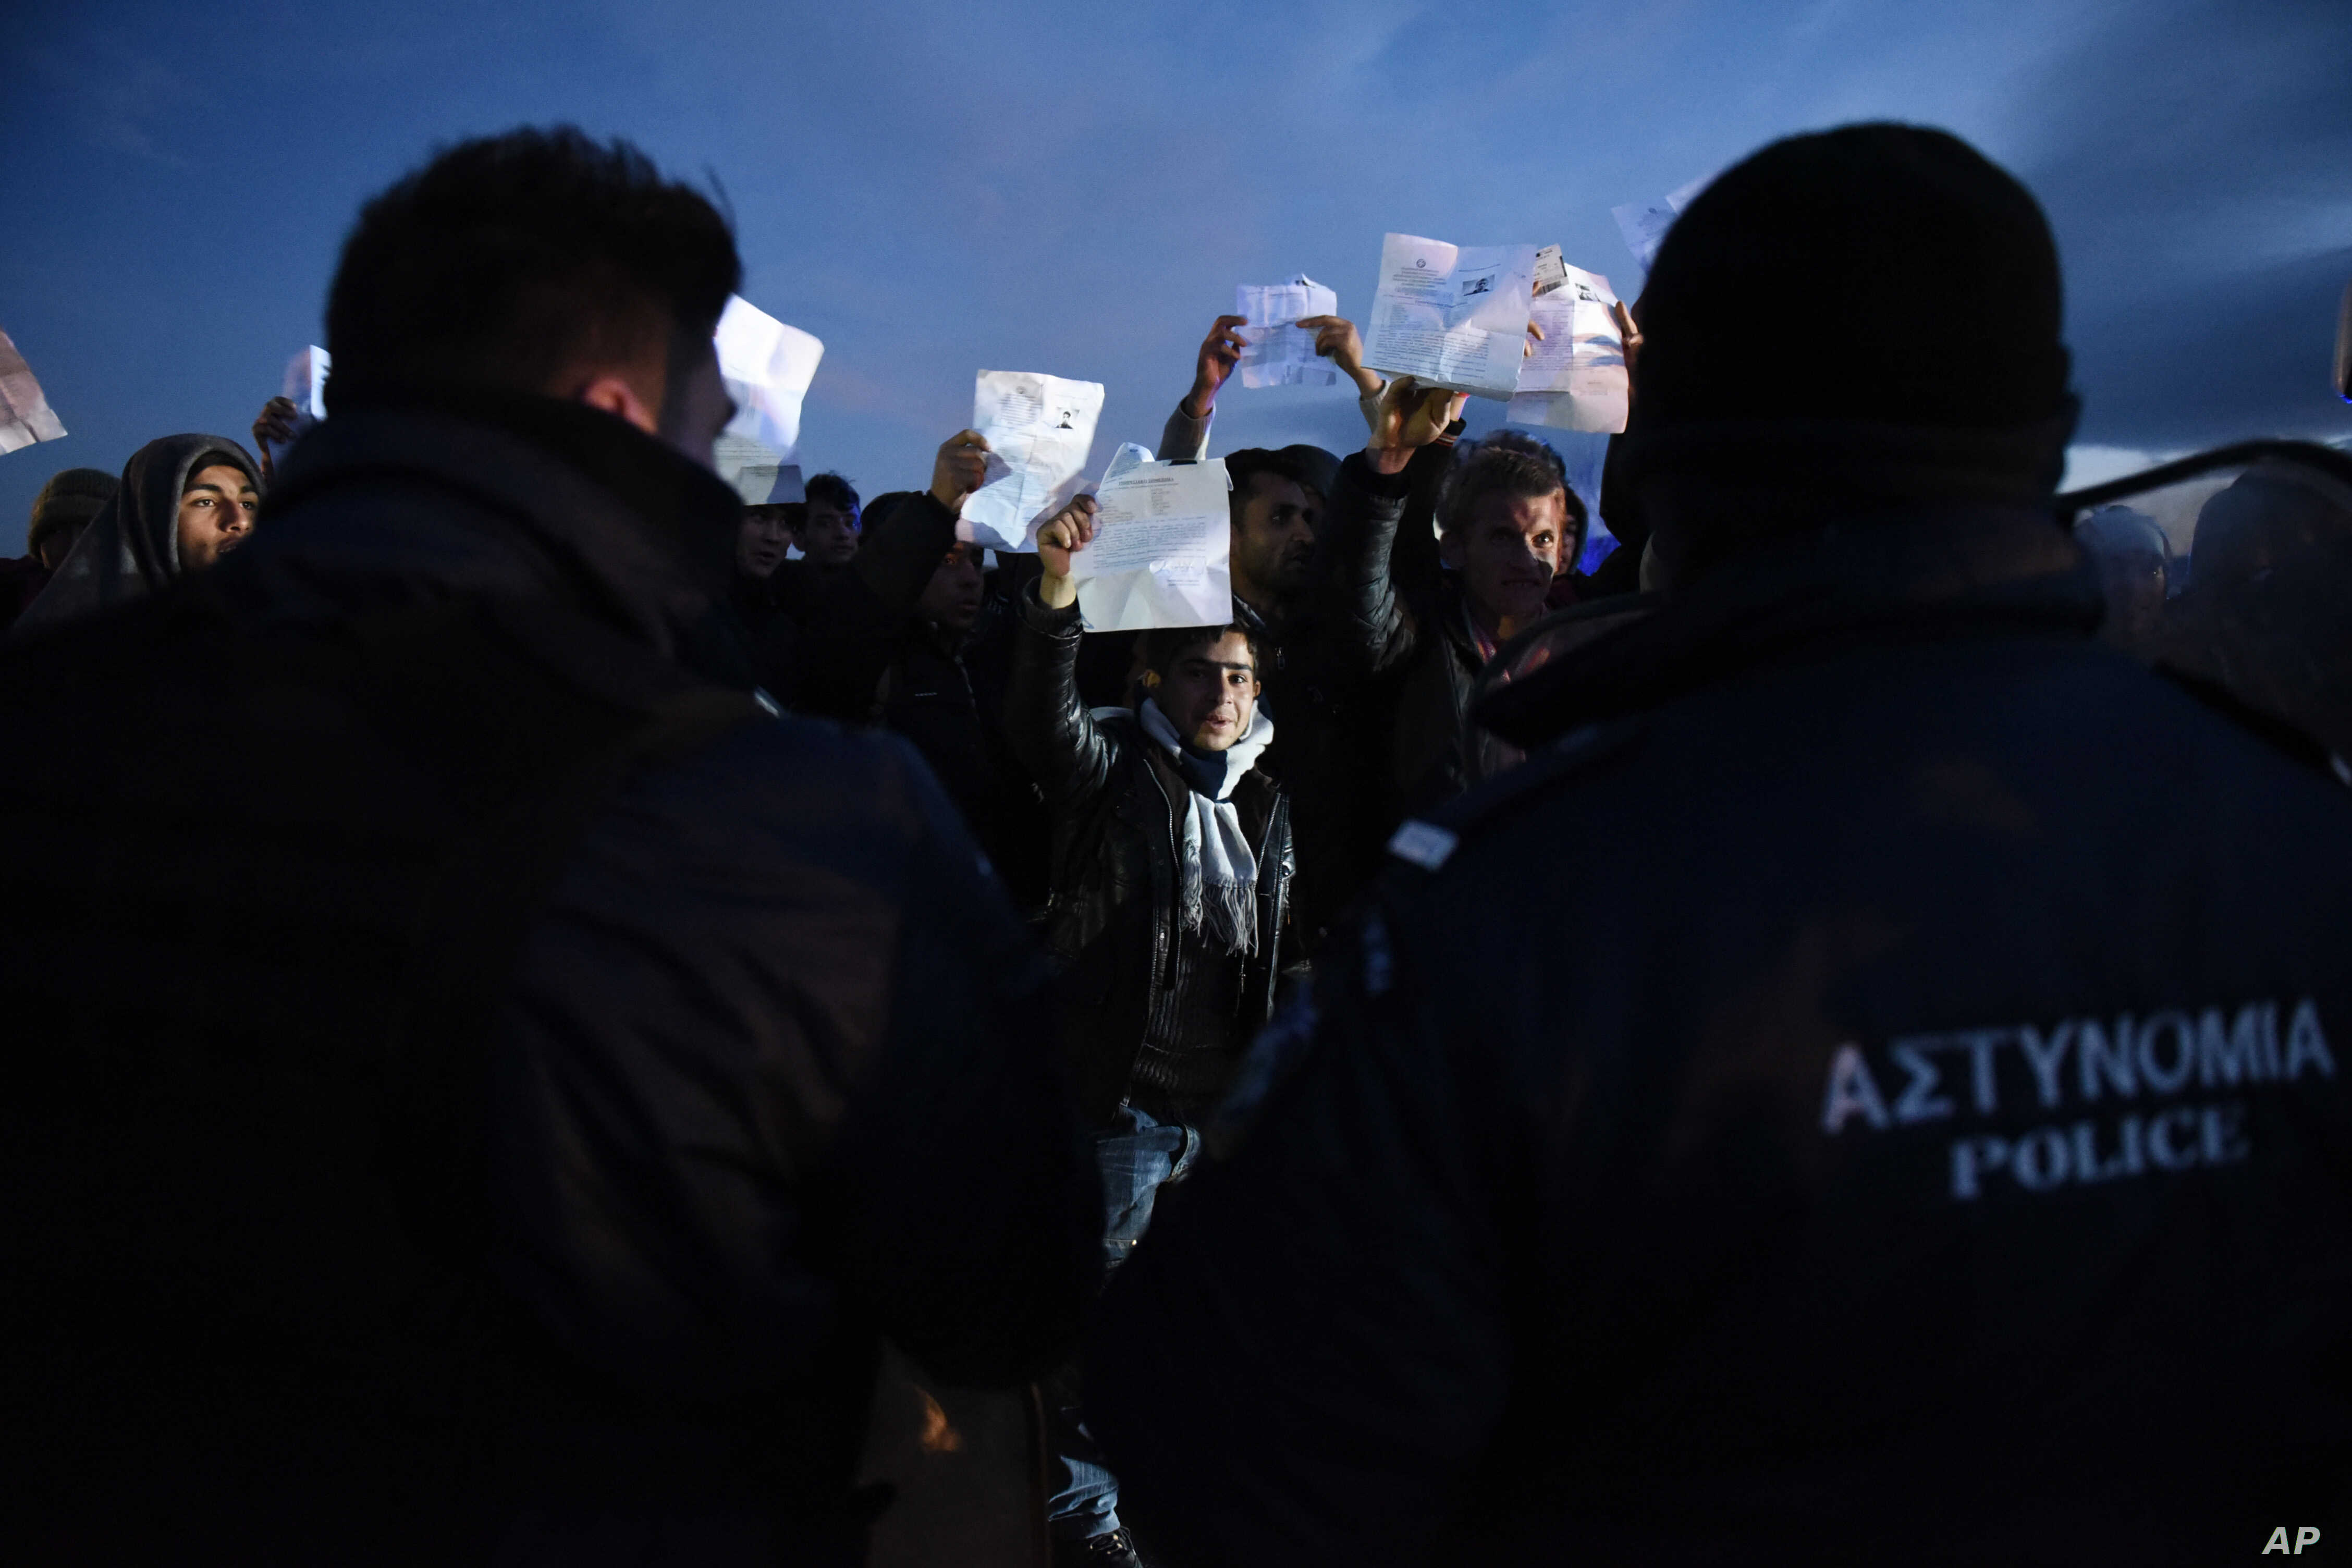 Afghan refugees stage a rally demanding to be allowed by the Greek police to reach the borderline with Macedonia, near the northern Greek village of Idomeni, on Sunday, Feb. 21, 2016.